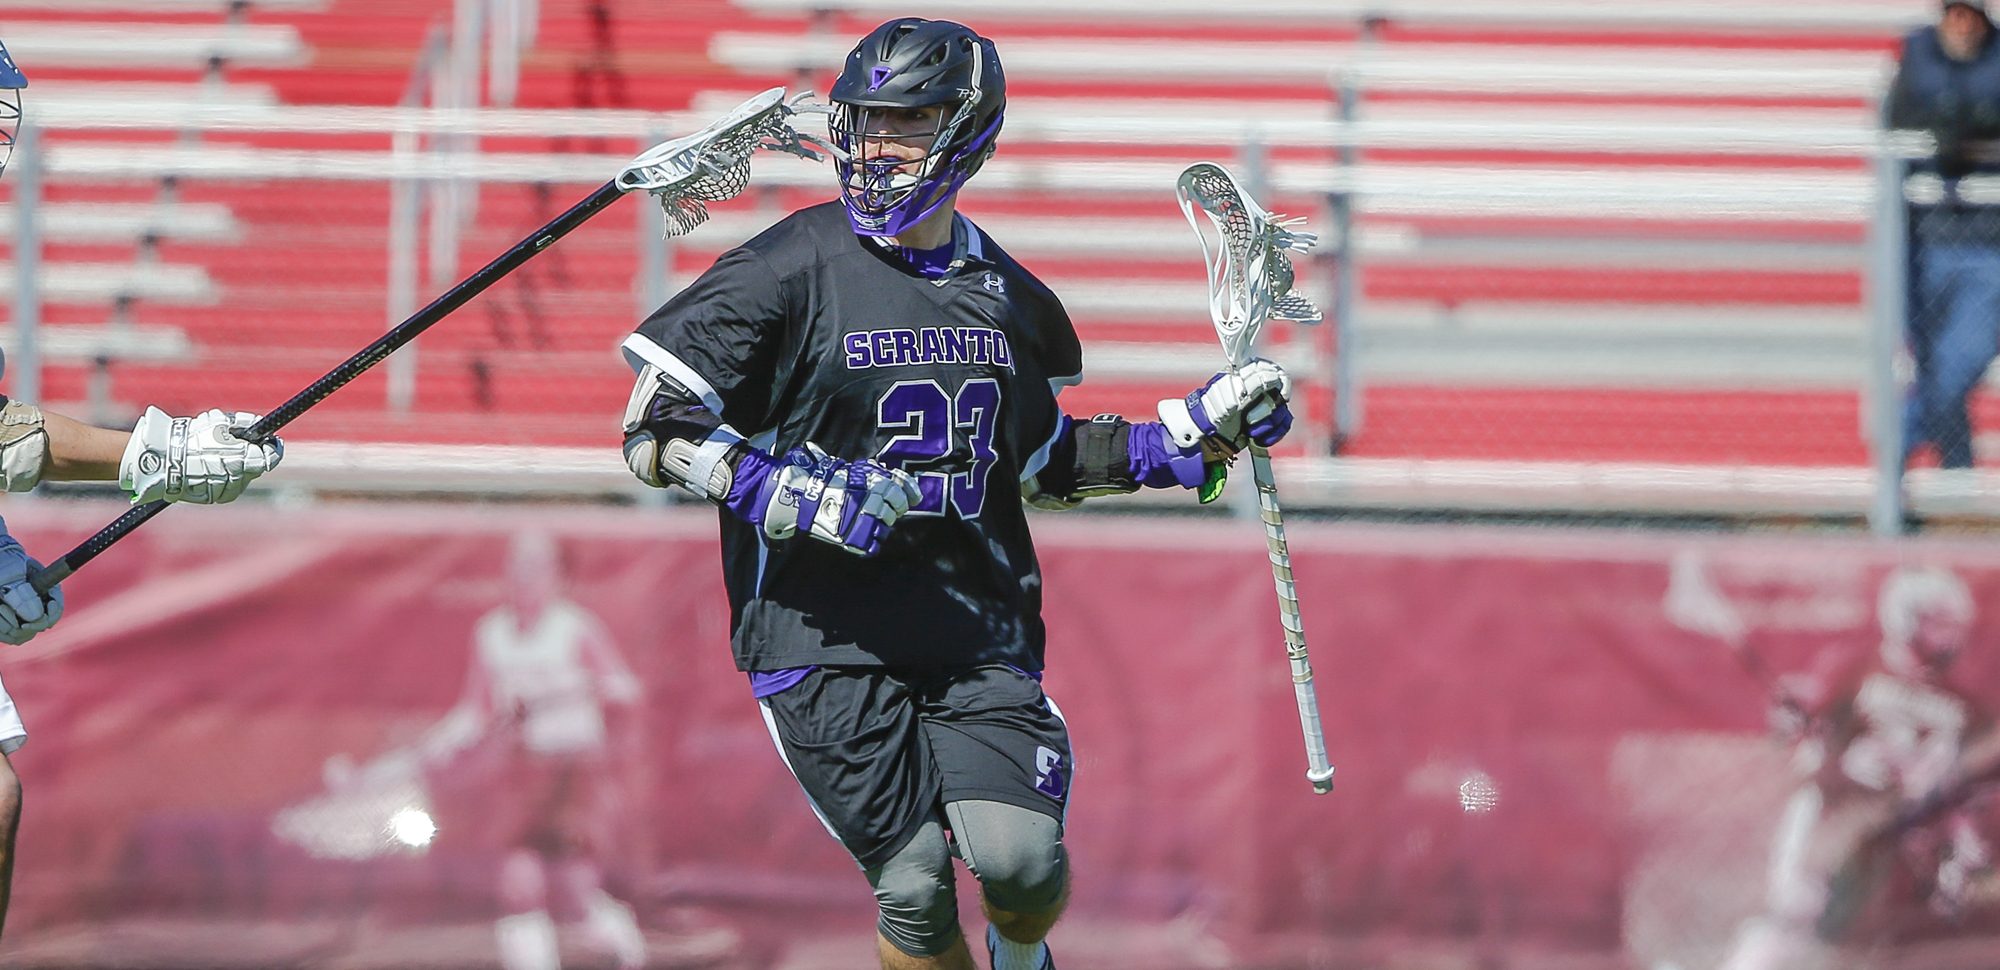 Senior attackman Jake Haimson had three goals and two assists in the win over SUNY Potsdam on Tuesday.